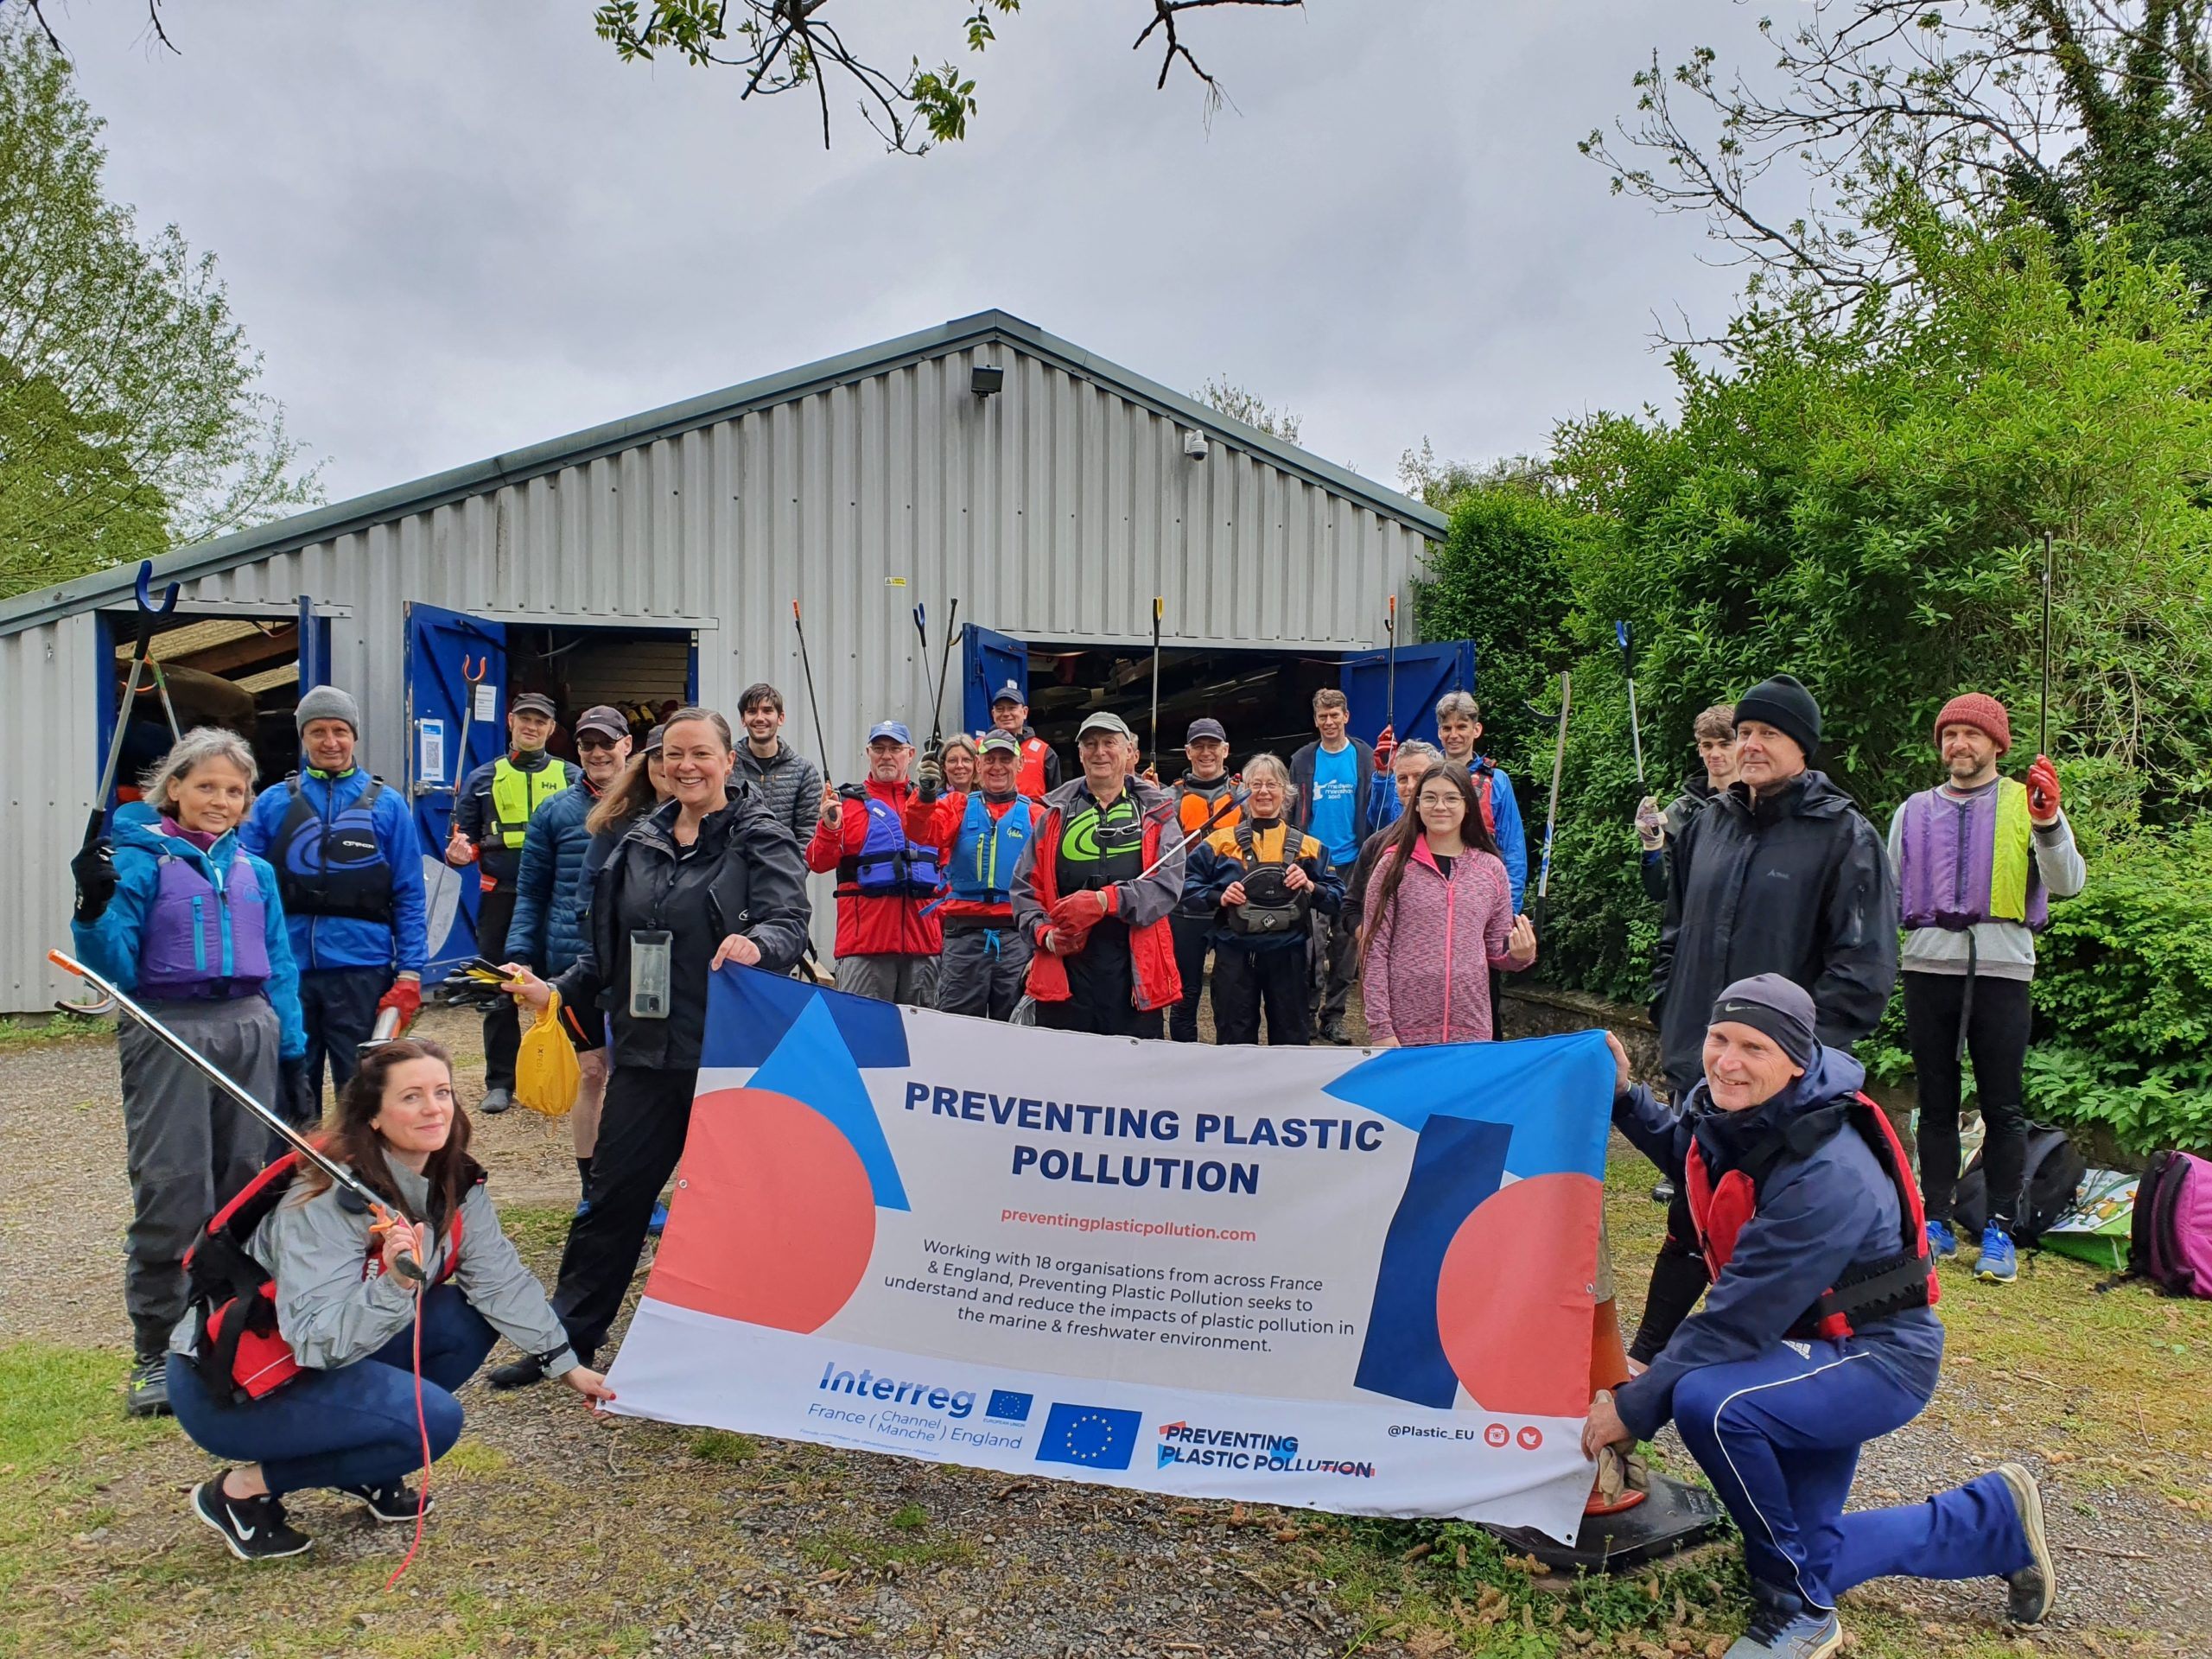 Litter pick organised by members of Tonbridge Canoe Club in Kent, United Kingdom, on the occasion of World Ocean Day 2021.